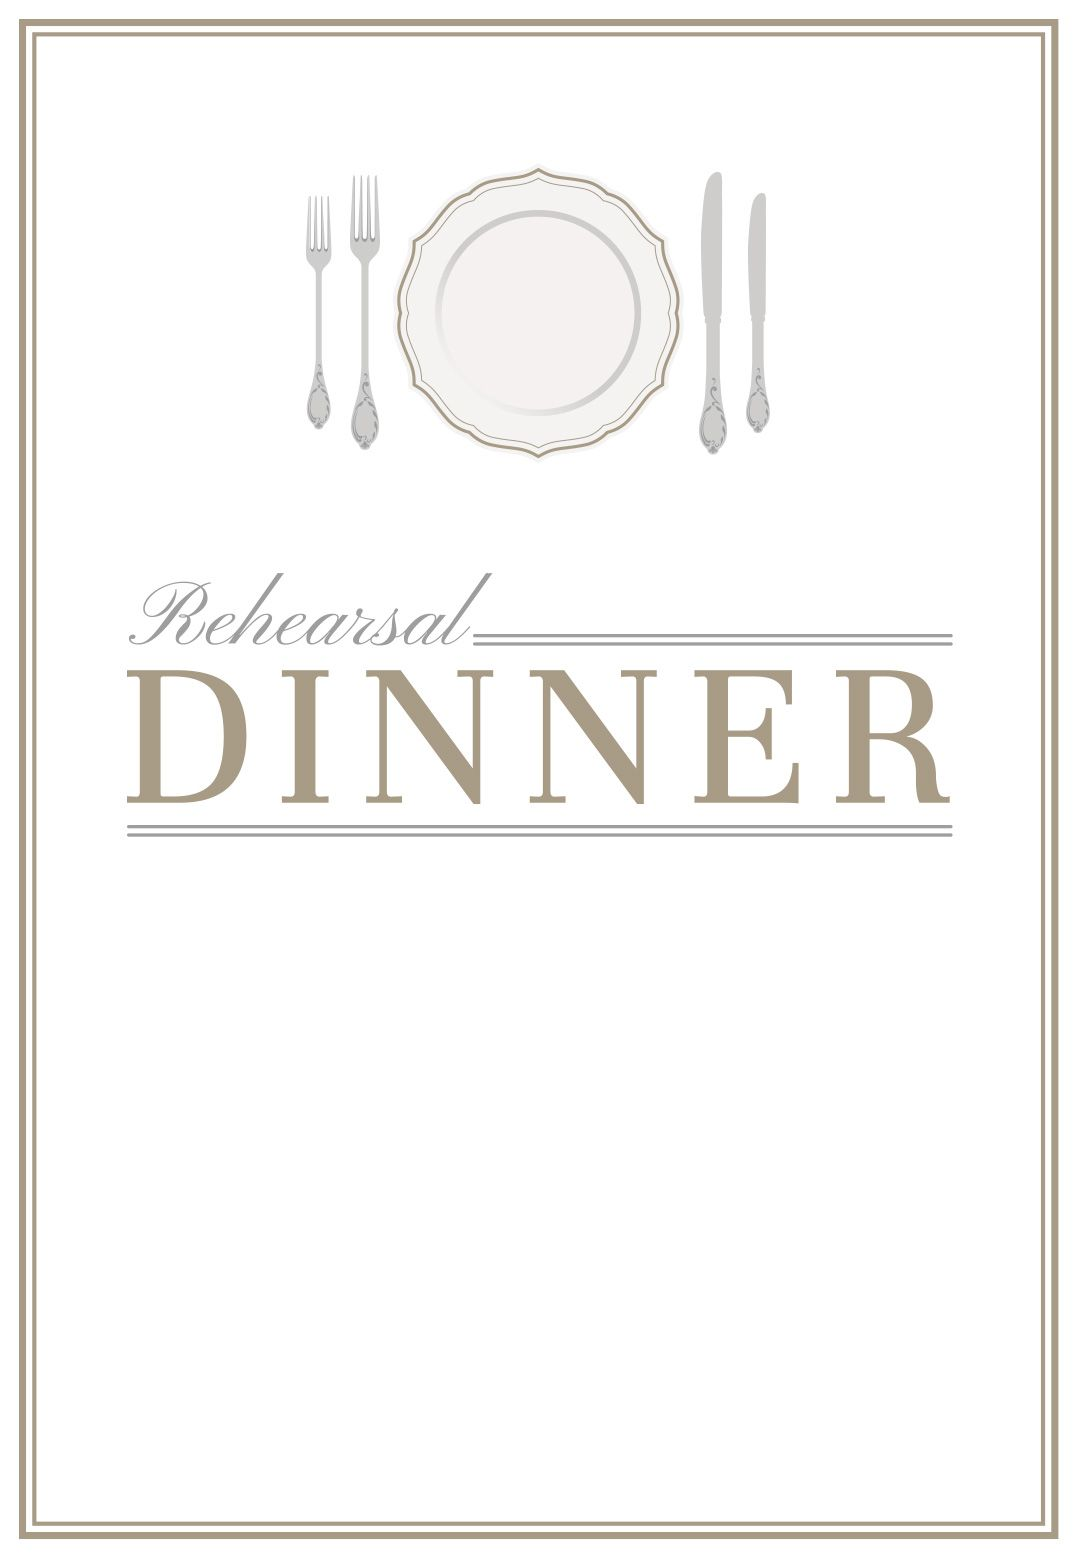 Dinner Invitation Template Elegant Setting  Free Printable Rehearsal Dinner Party Invitation .